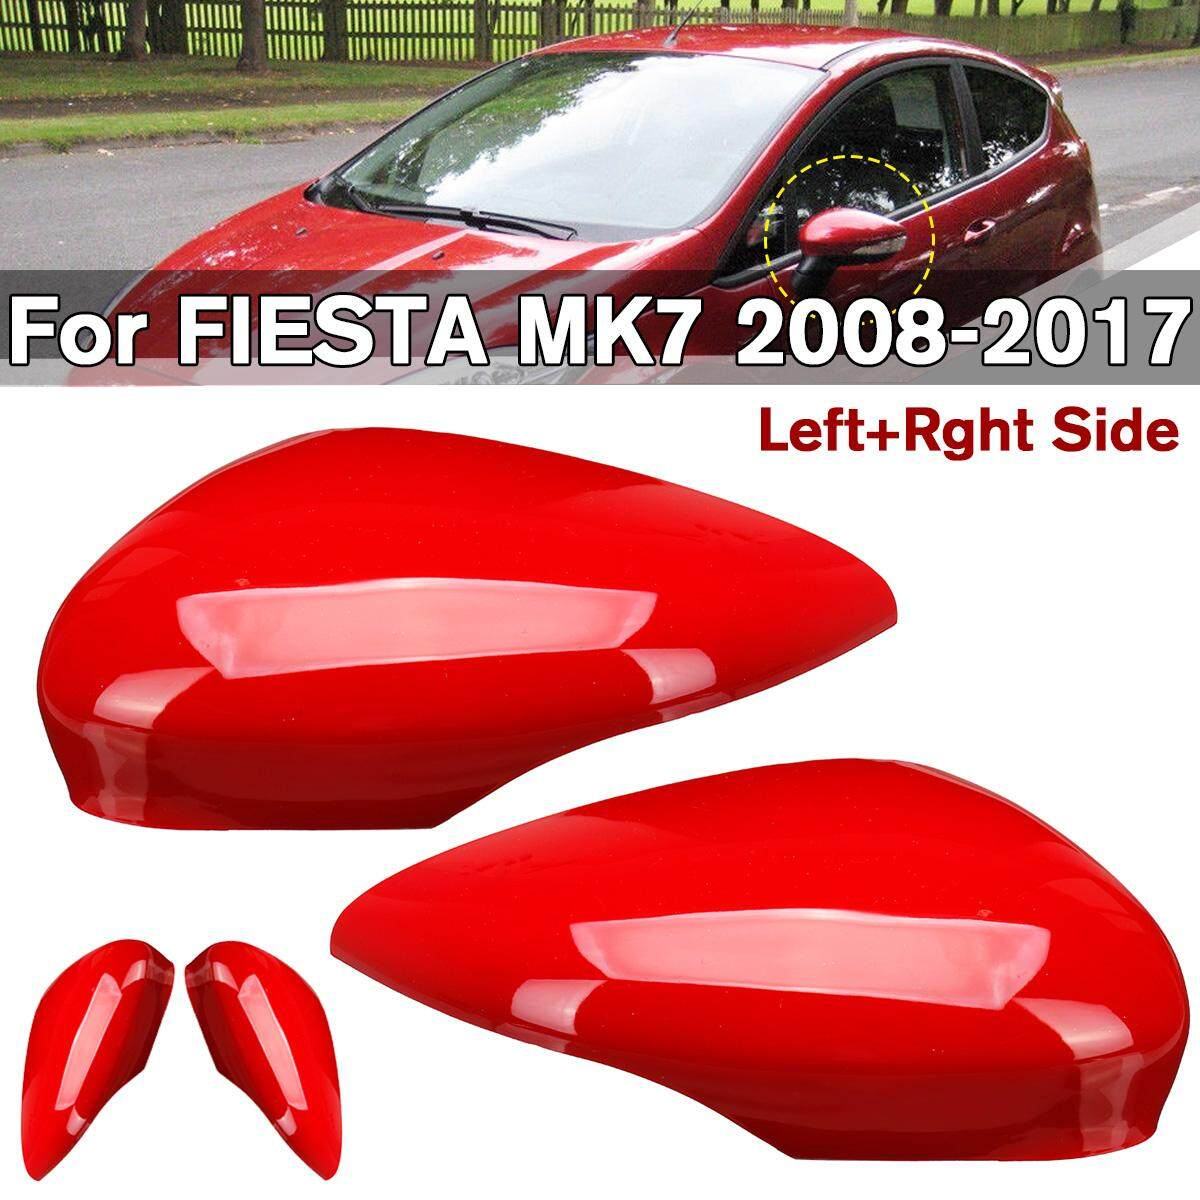 Passenger Left Side Wing Mirror Cover Cap Painted For Ford Fiesta MK7 2008-2017